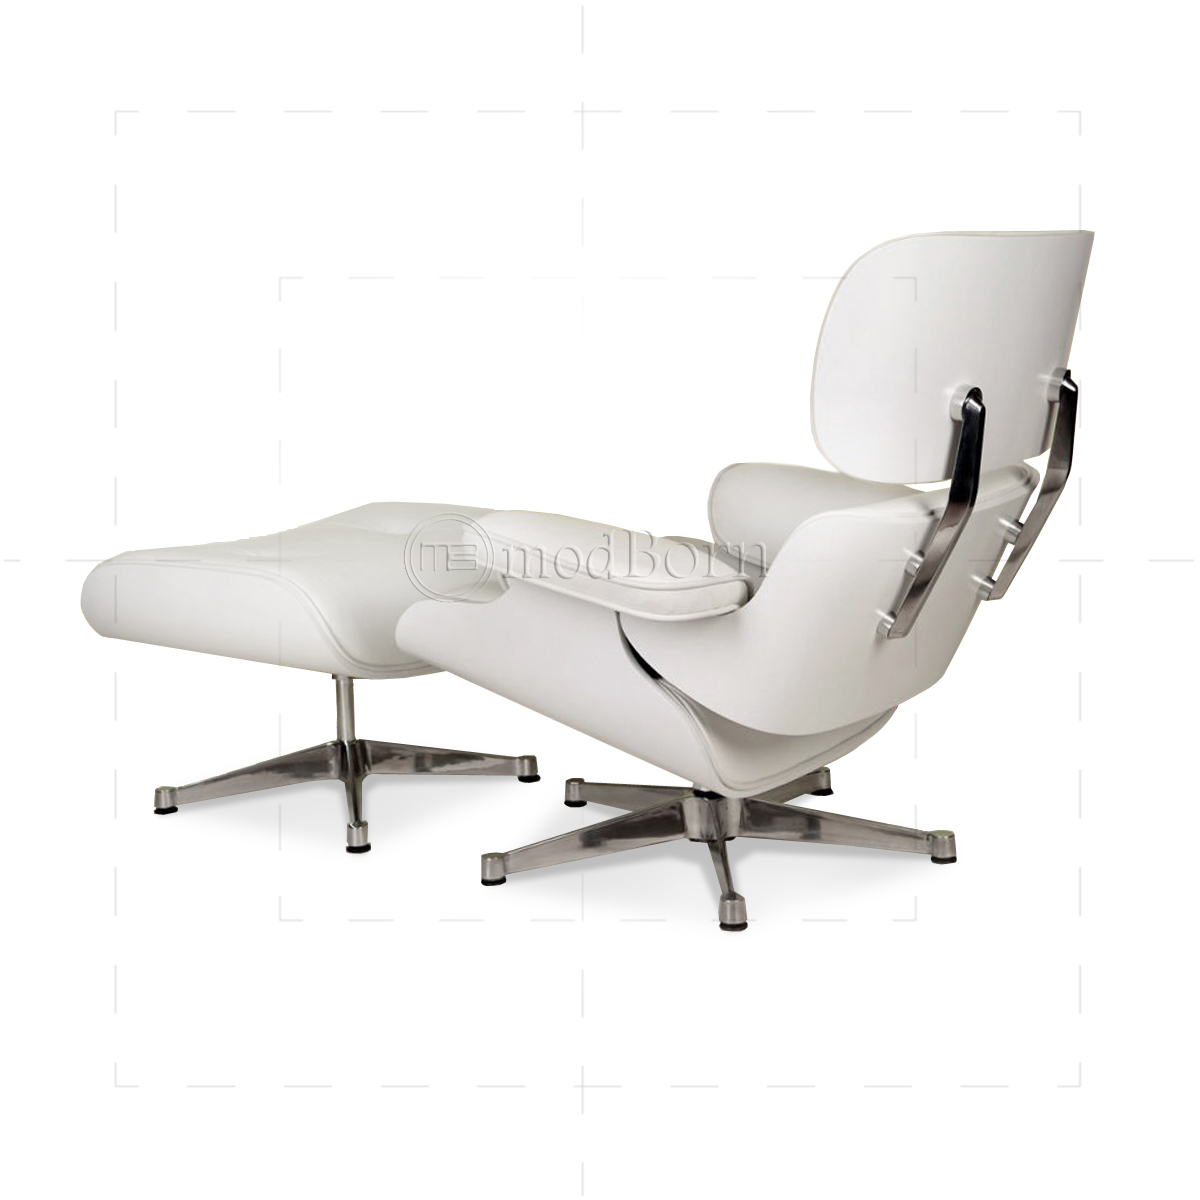 eames style lounge chair and ottoman white leather white wood replica. Black Bedroom Furniture Sets. Home Design Ideas